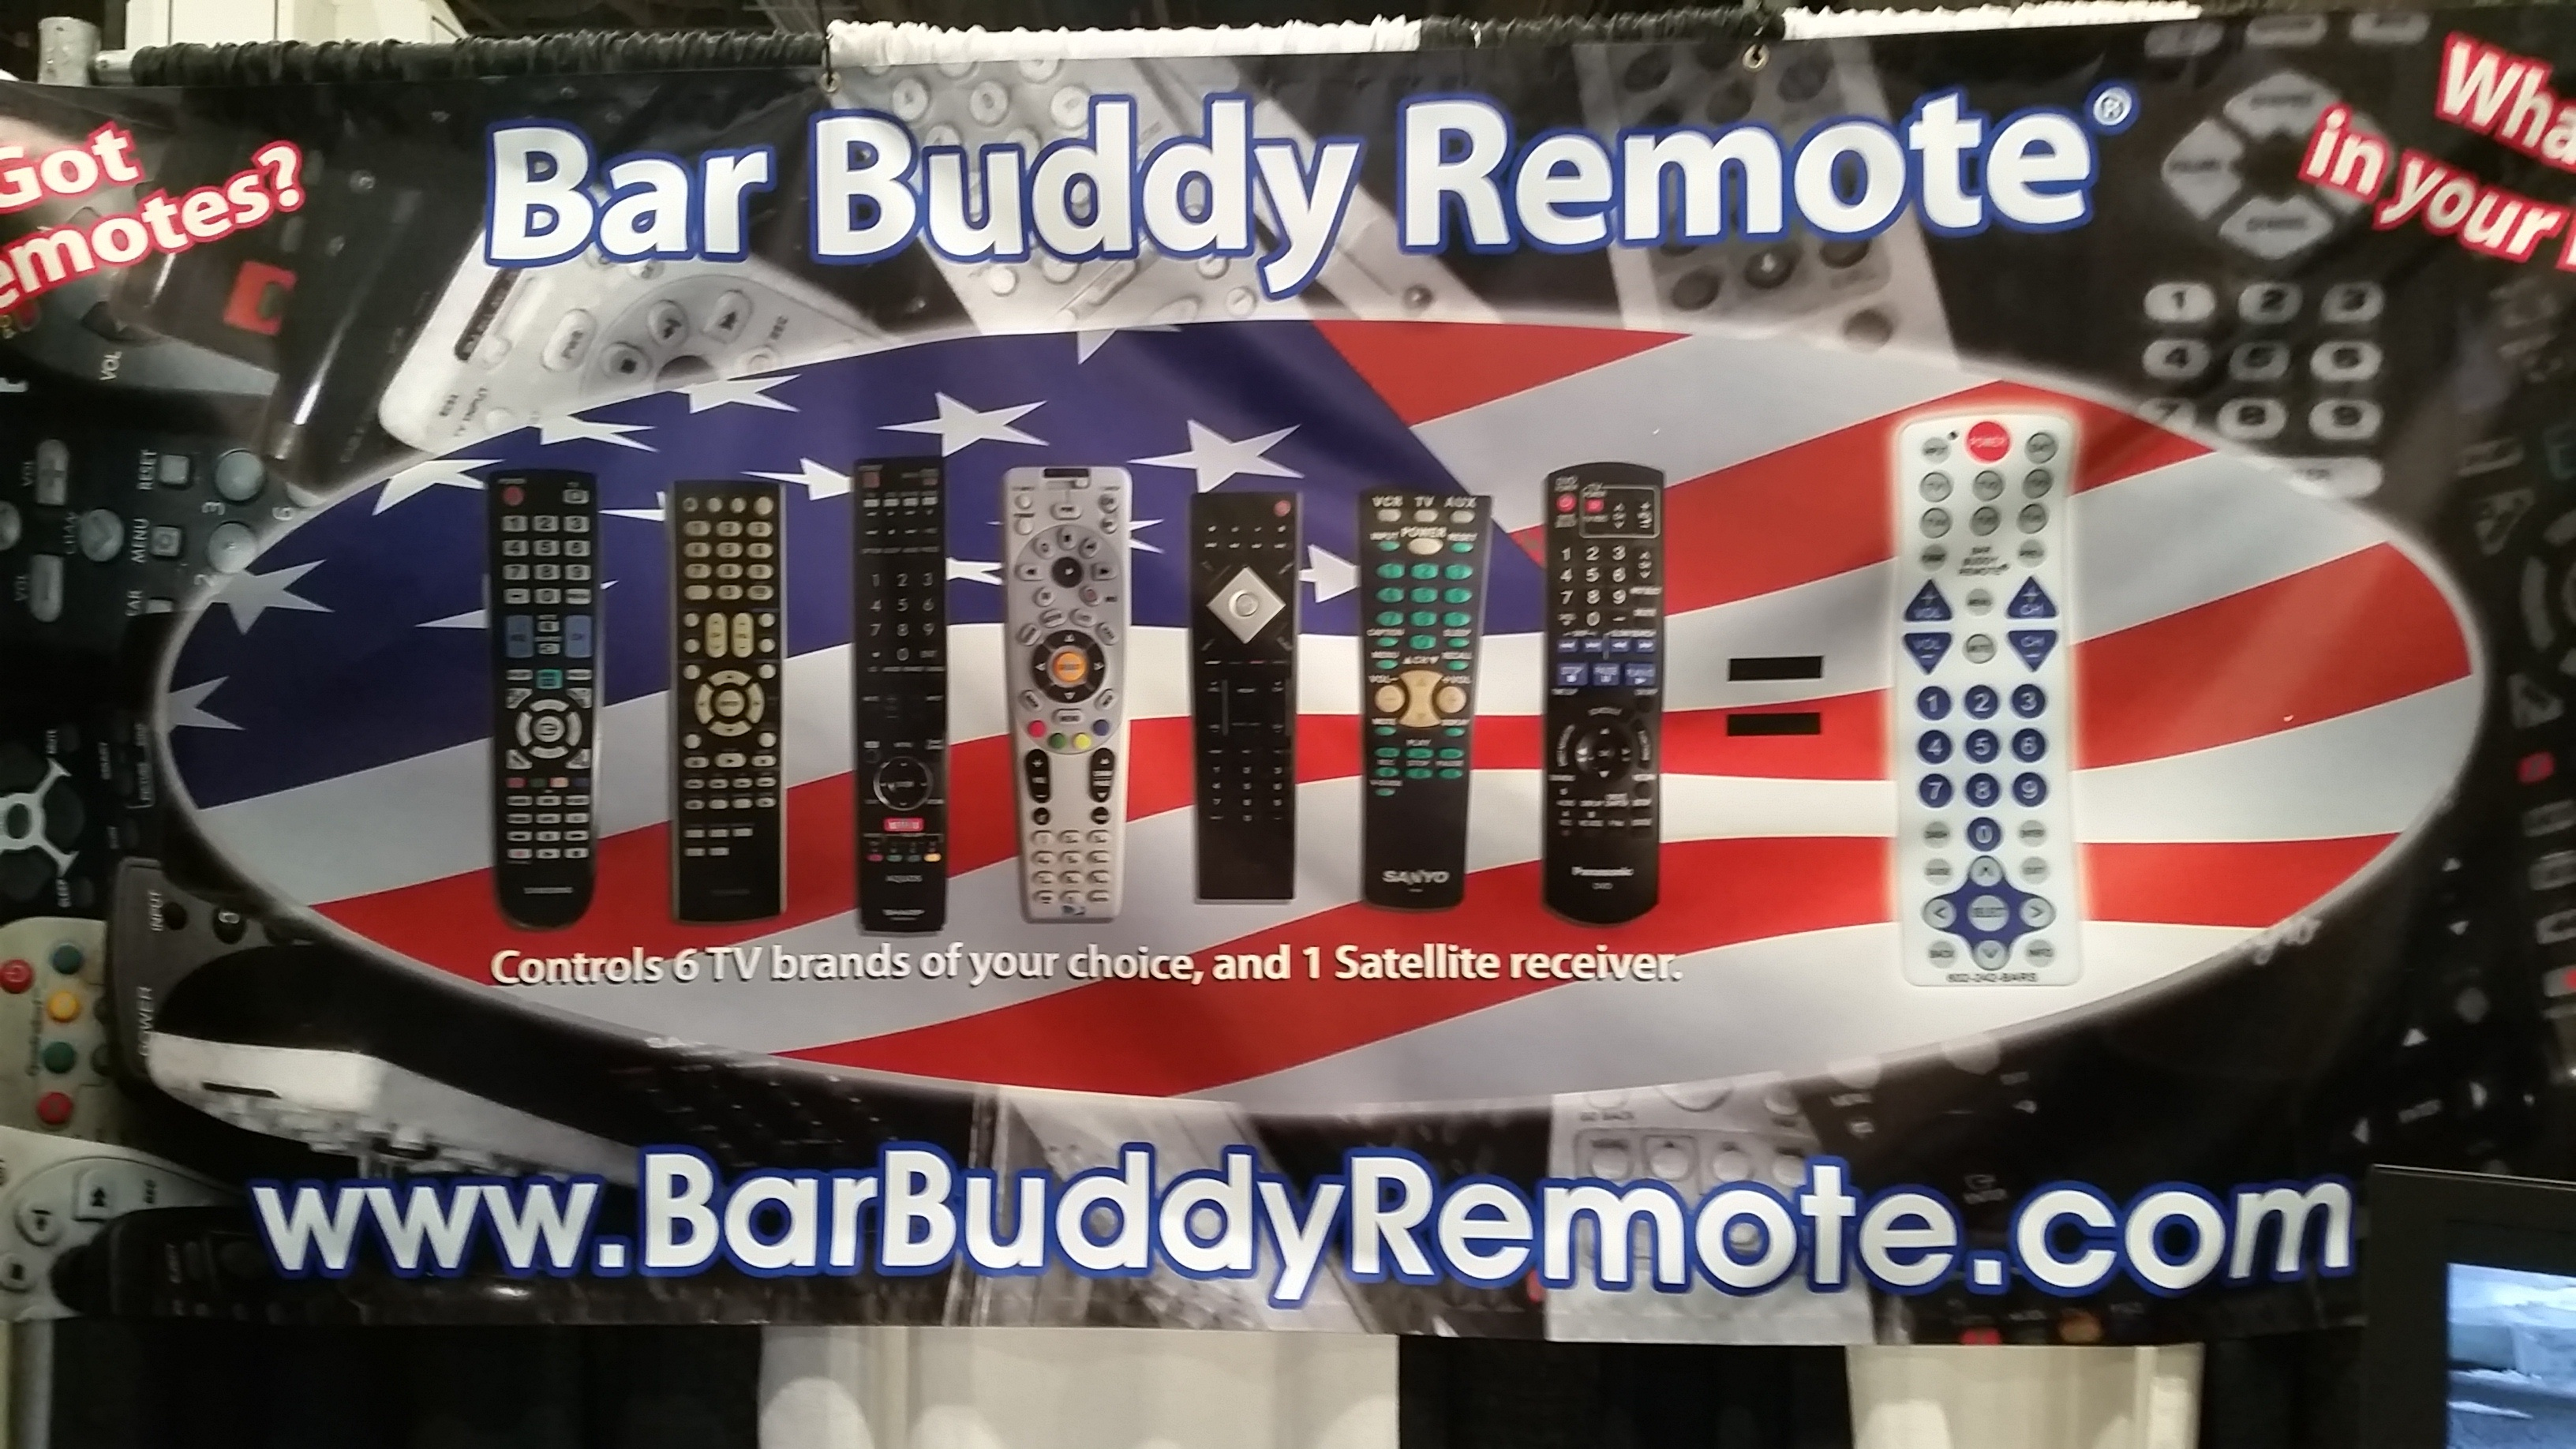 Bar Buddy Remote - NCB Show 2016 Intriguing Products - Bar-i Bar Inventory